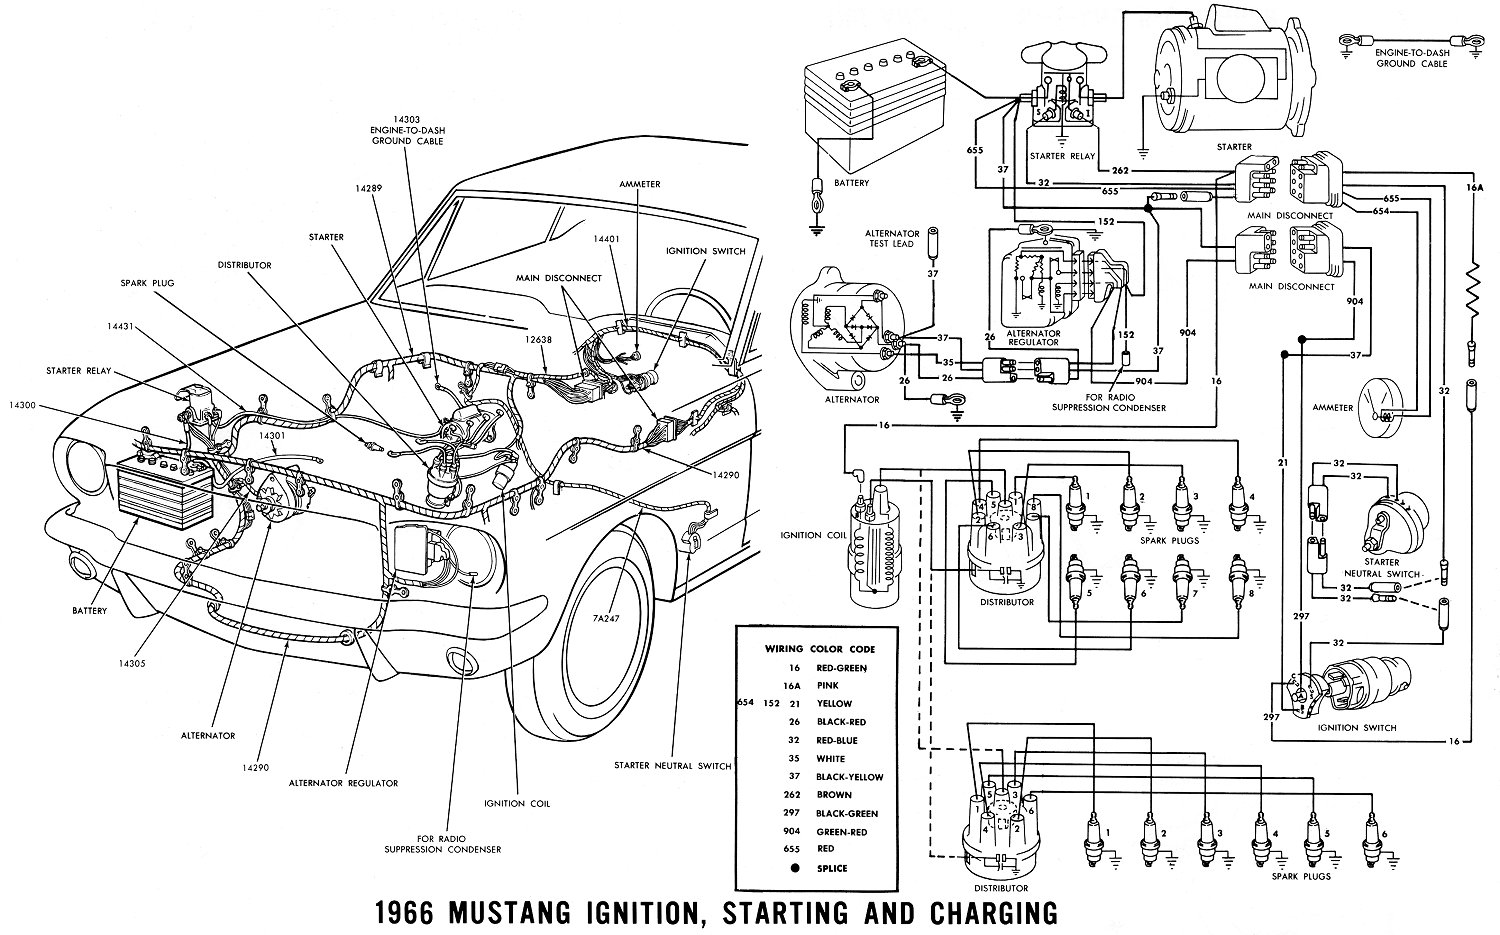 1966 Mustang Ignition Wiring Diagram on 2003 dodge ram wiring diagram cluster